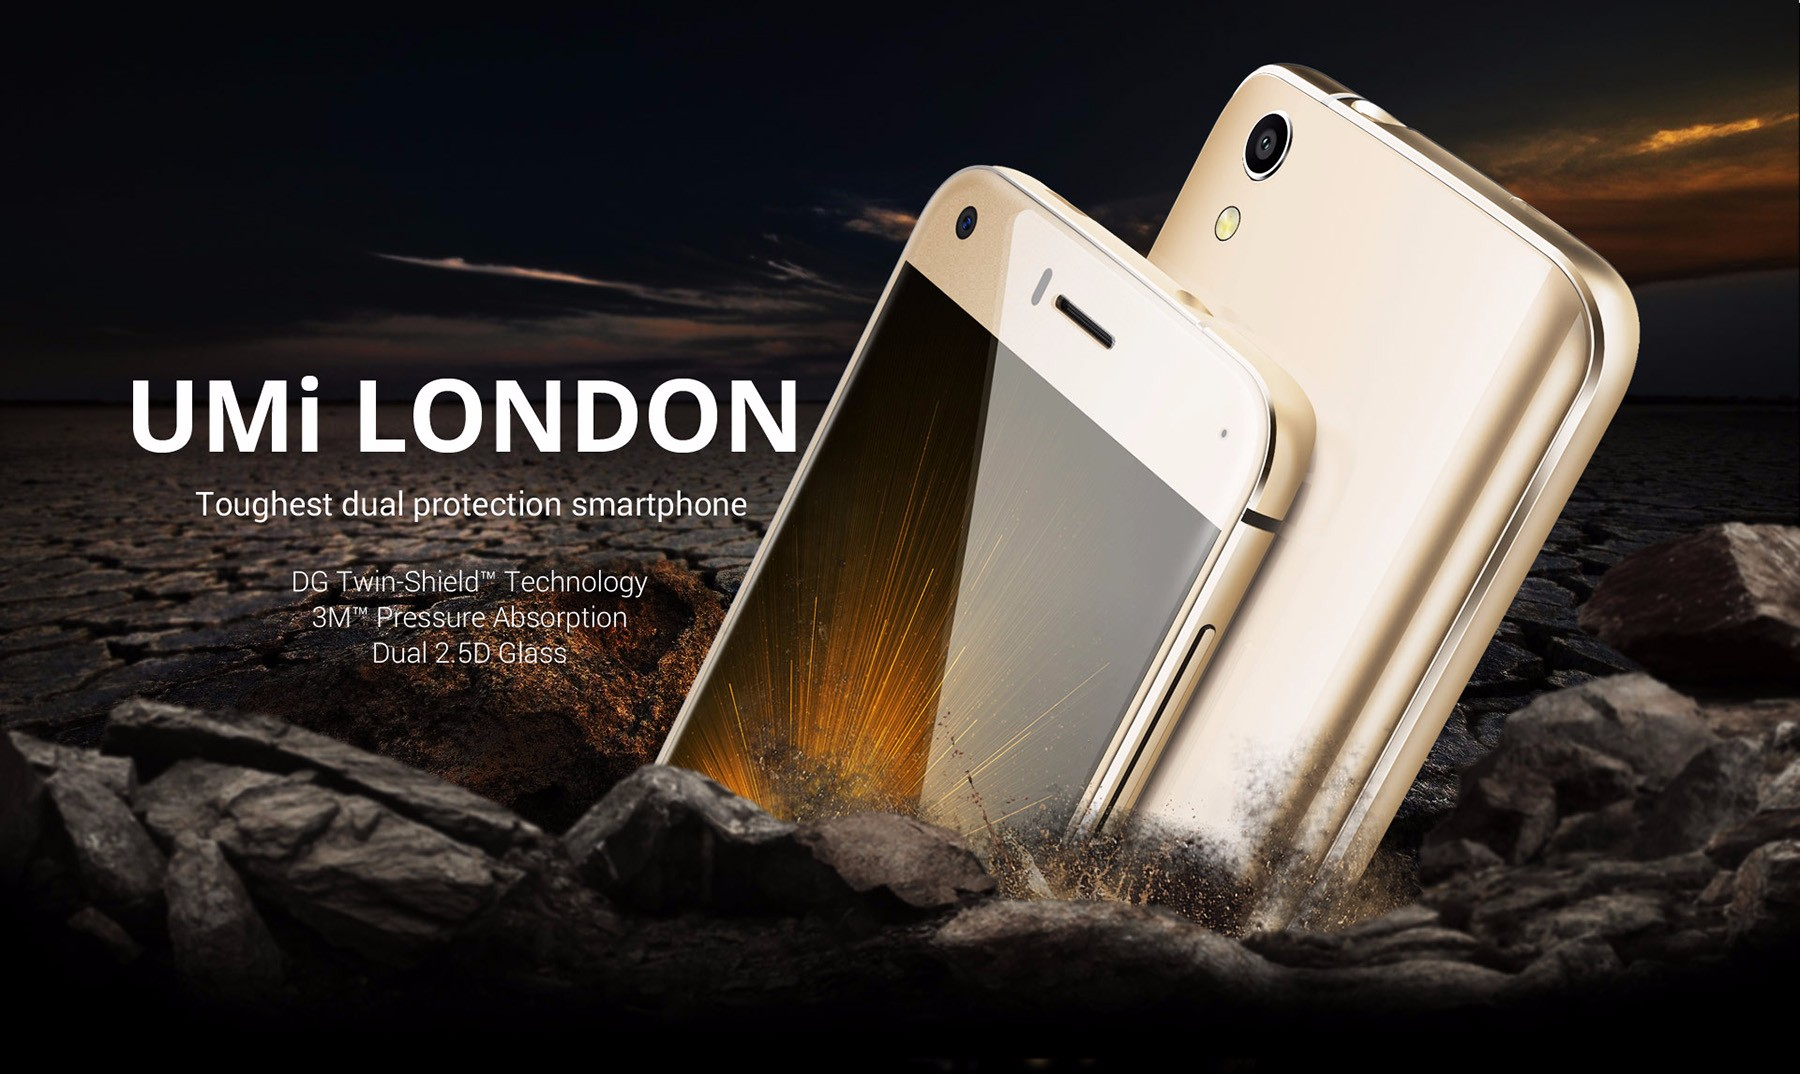 UMi LONDON Rugged Phone Android 6.0 5.0 inch HD Screen 3G Smartphone MTK6580 Quad Core 1.3GHz 1GB RAM 8GB ROM Gravity Sensor Accelerometer